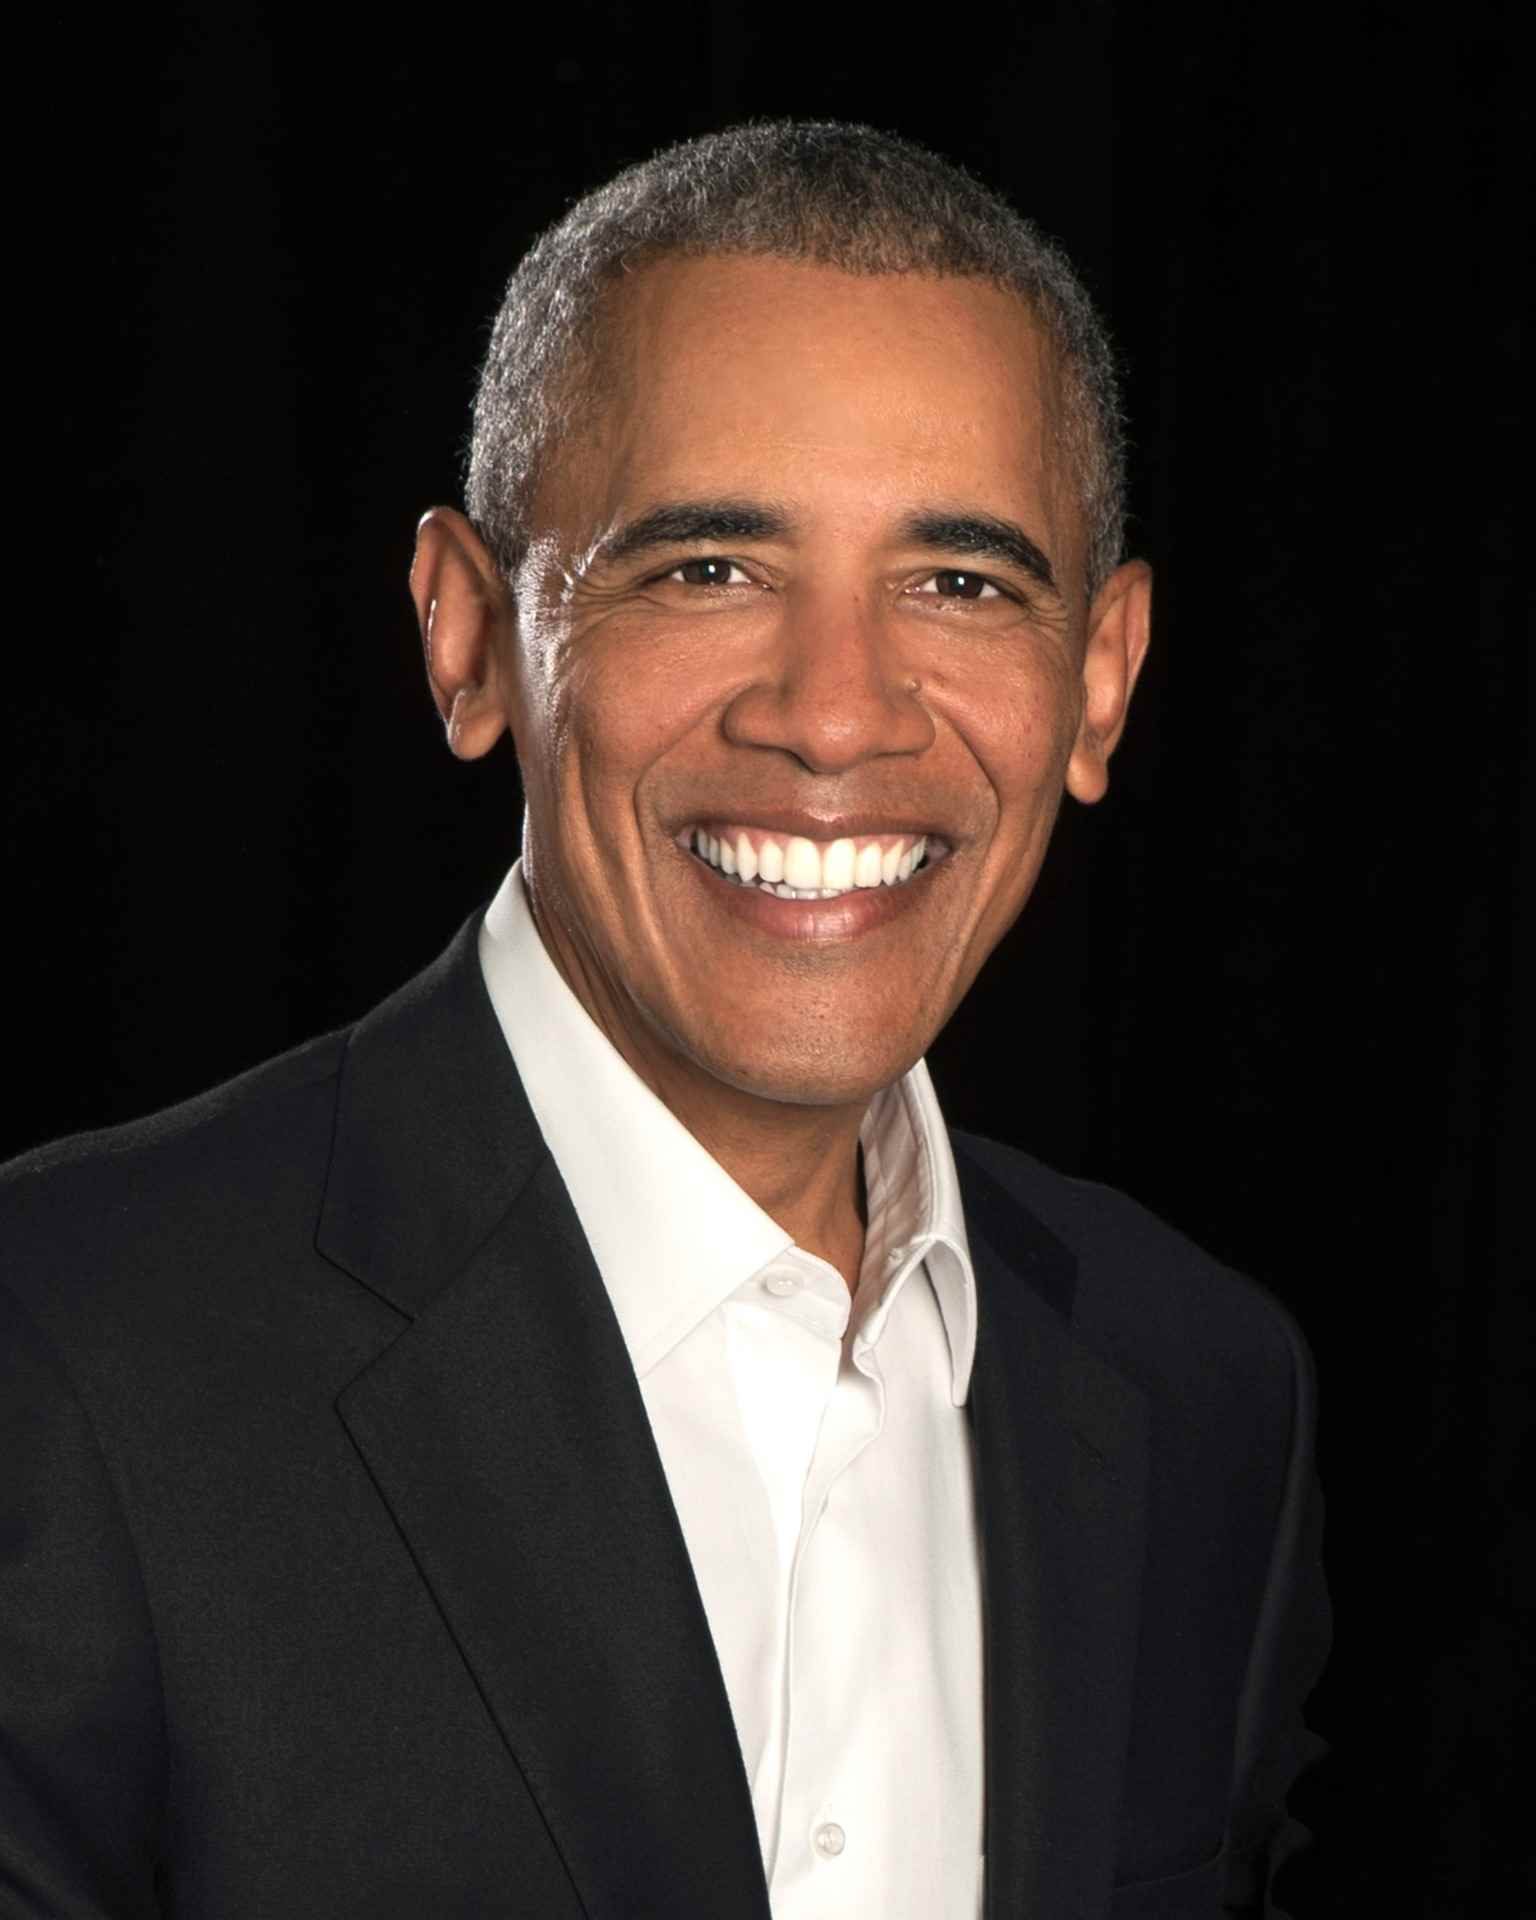 Corporate Headshot Barack Obama